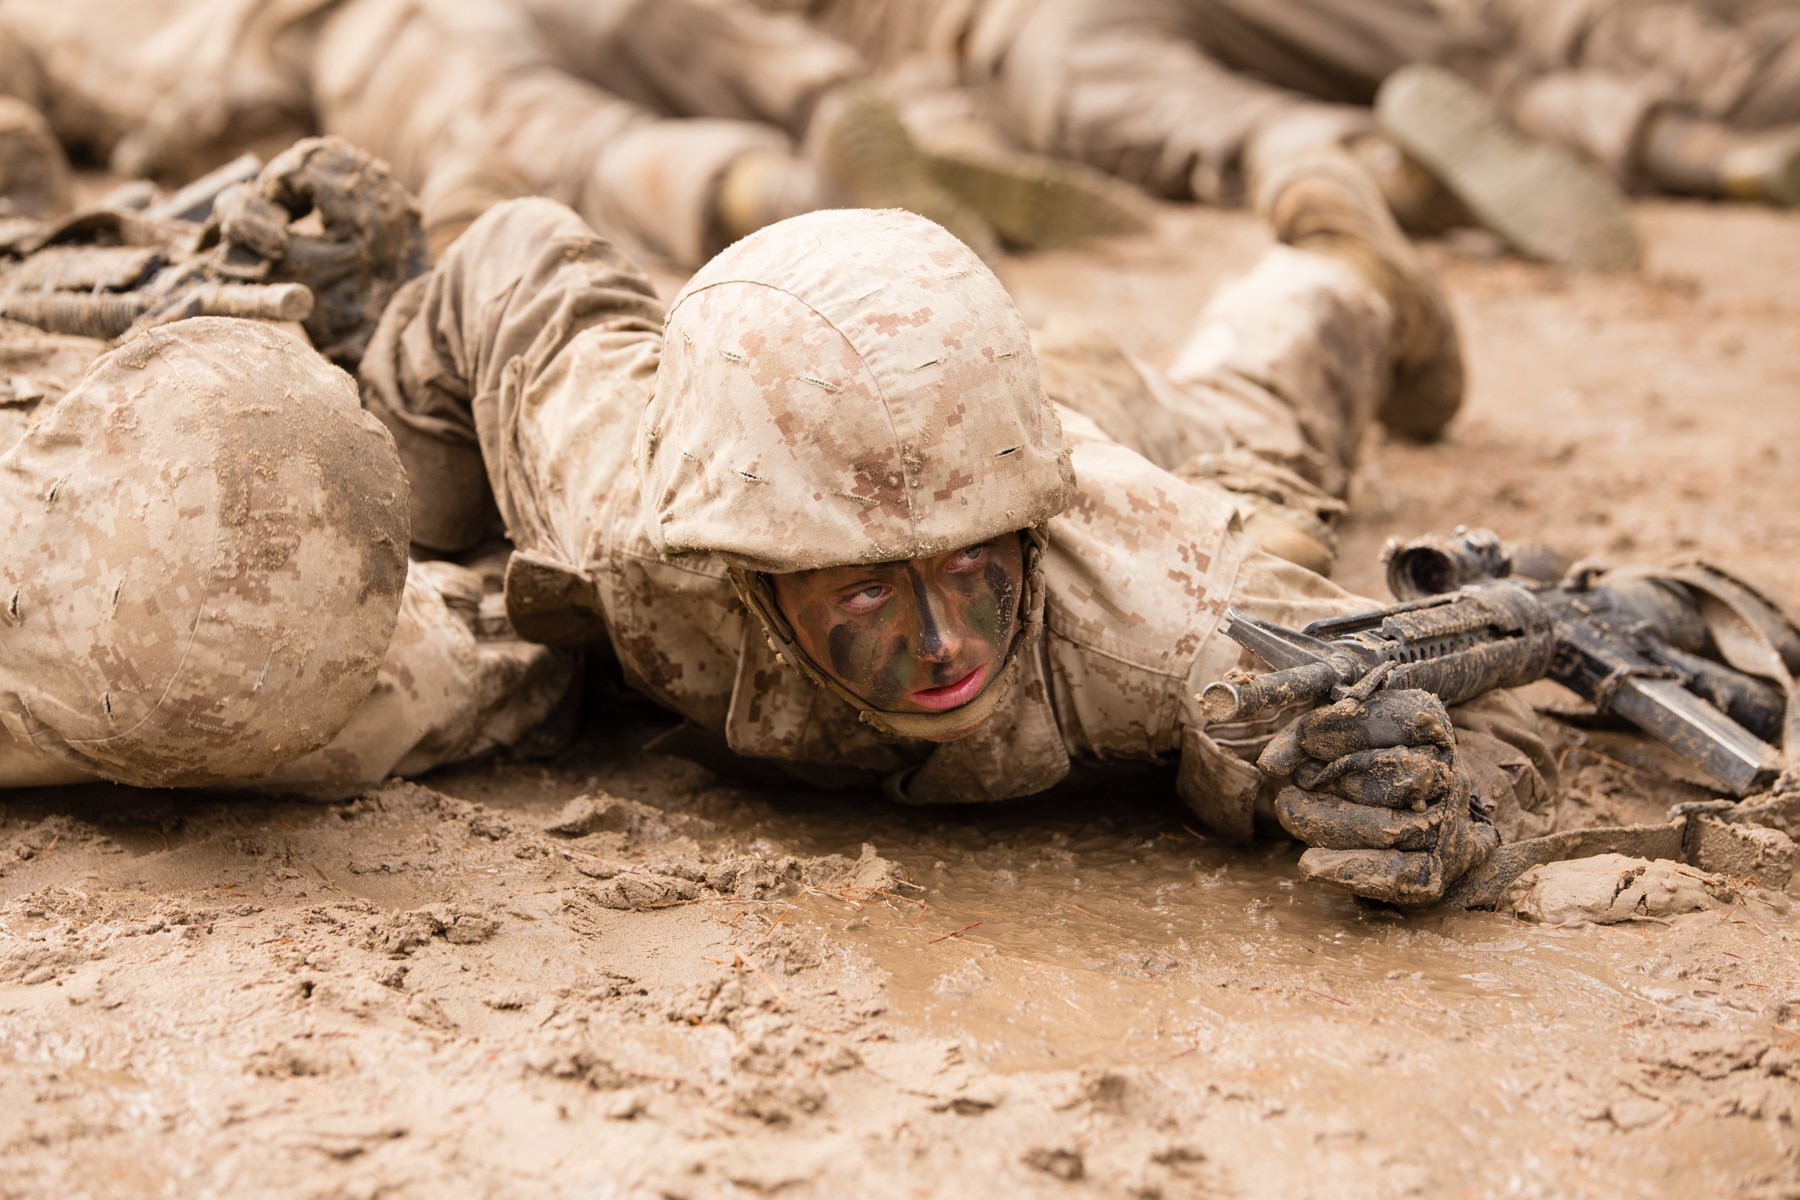 Soldier lying facedown in mud (U.S. Marine Corps/Staff Sergeant Greg Thomas)